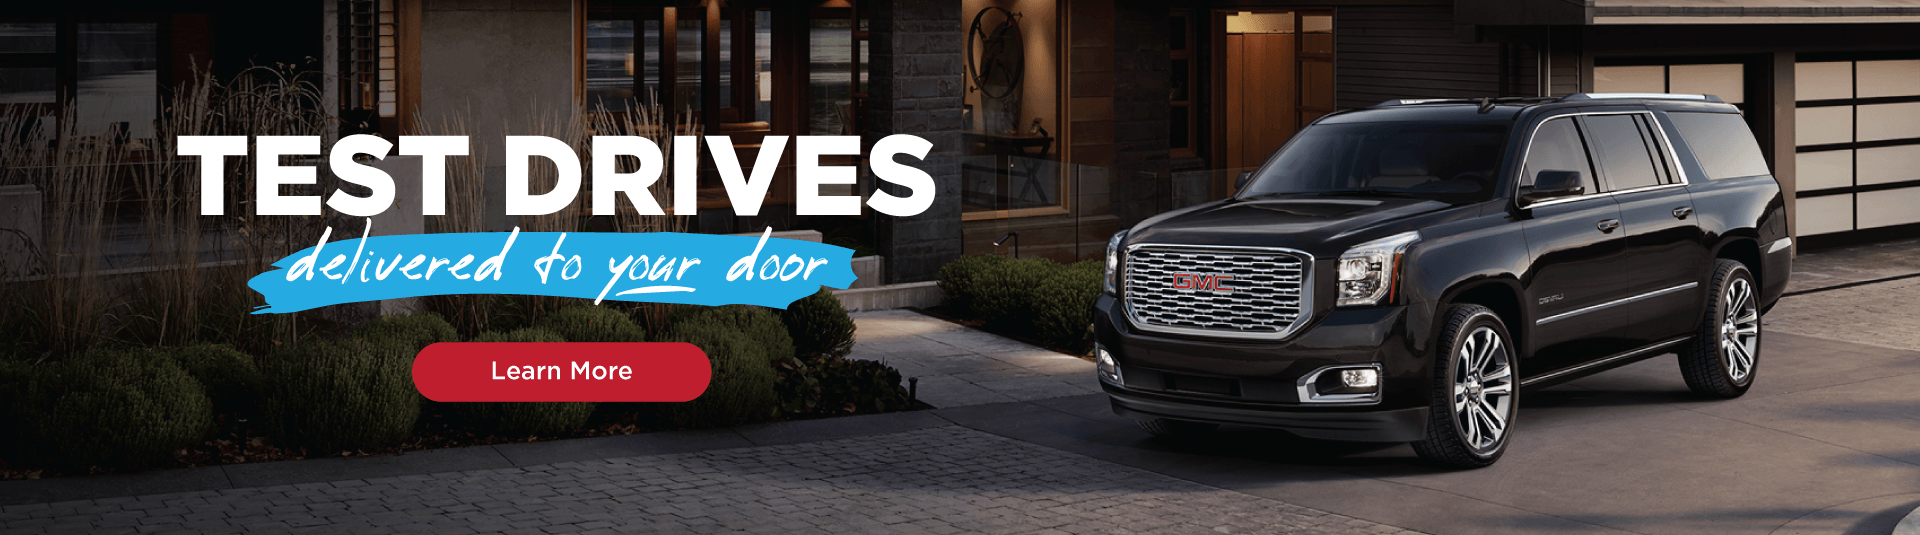 Test Drive Cadillac, Chevrolet, Buick or GMC from home in Toronto